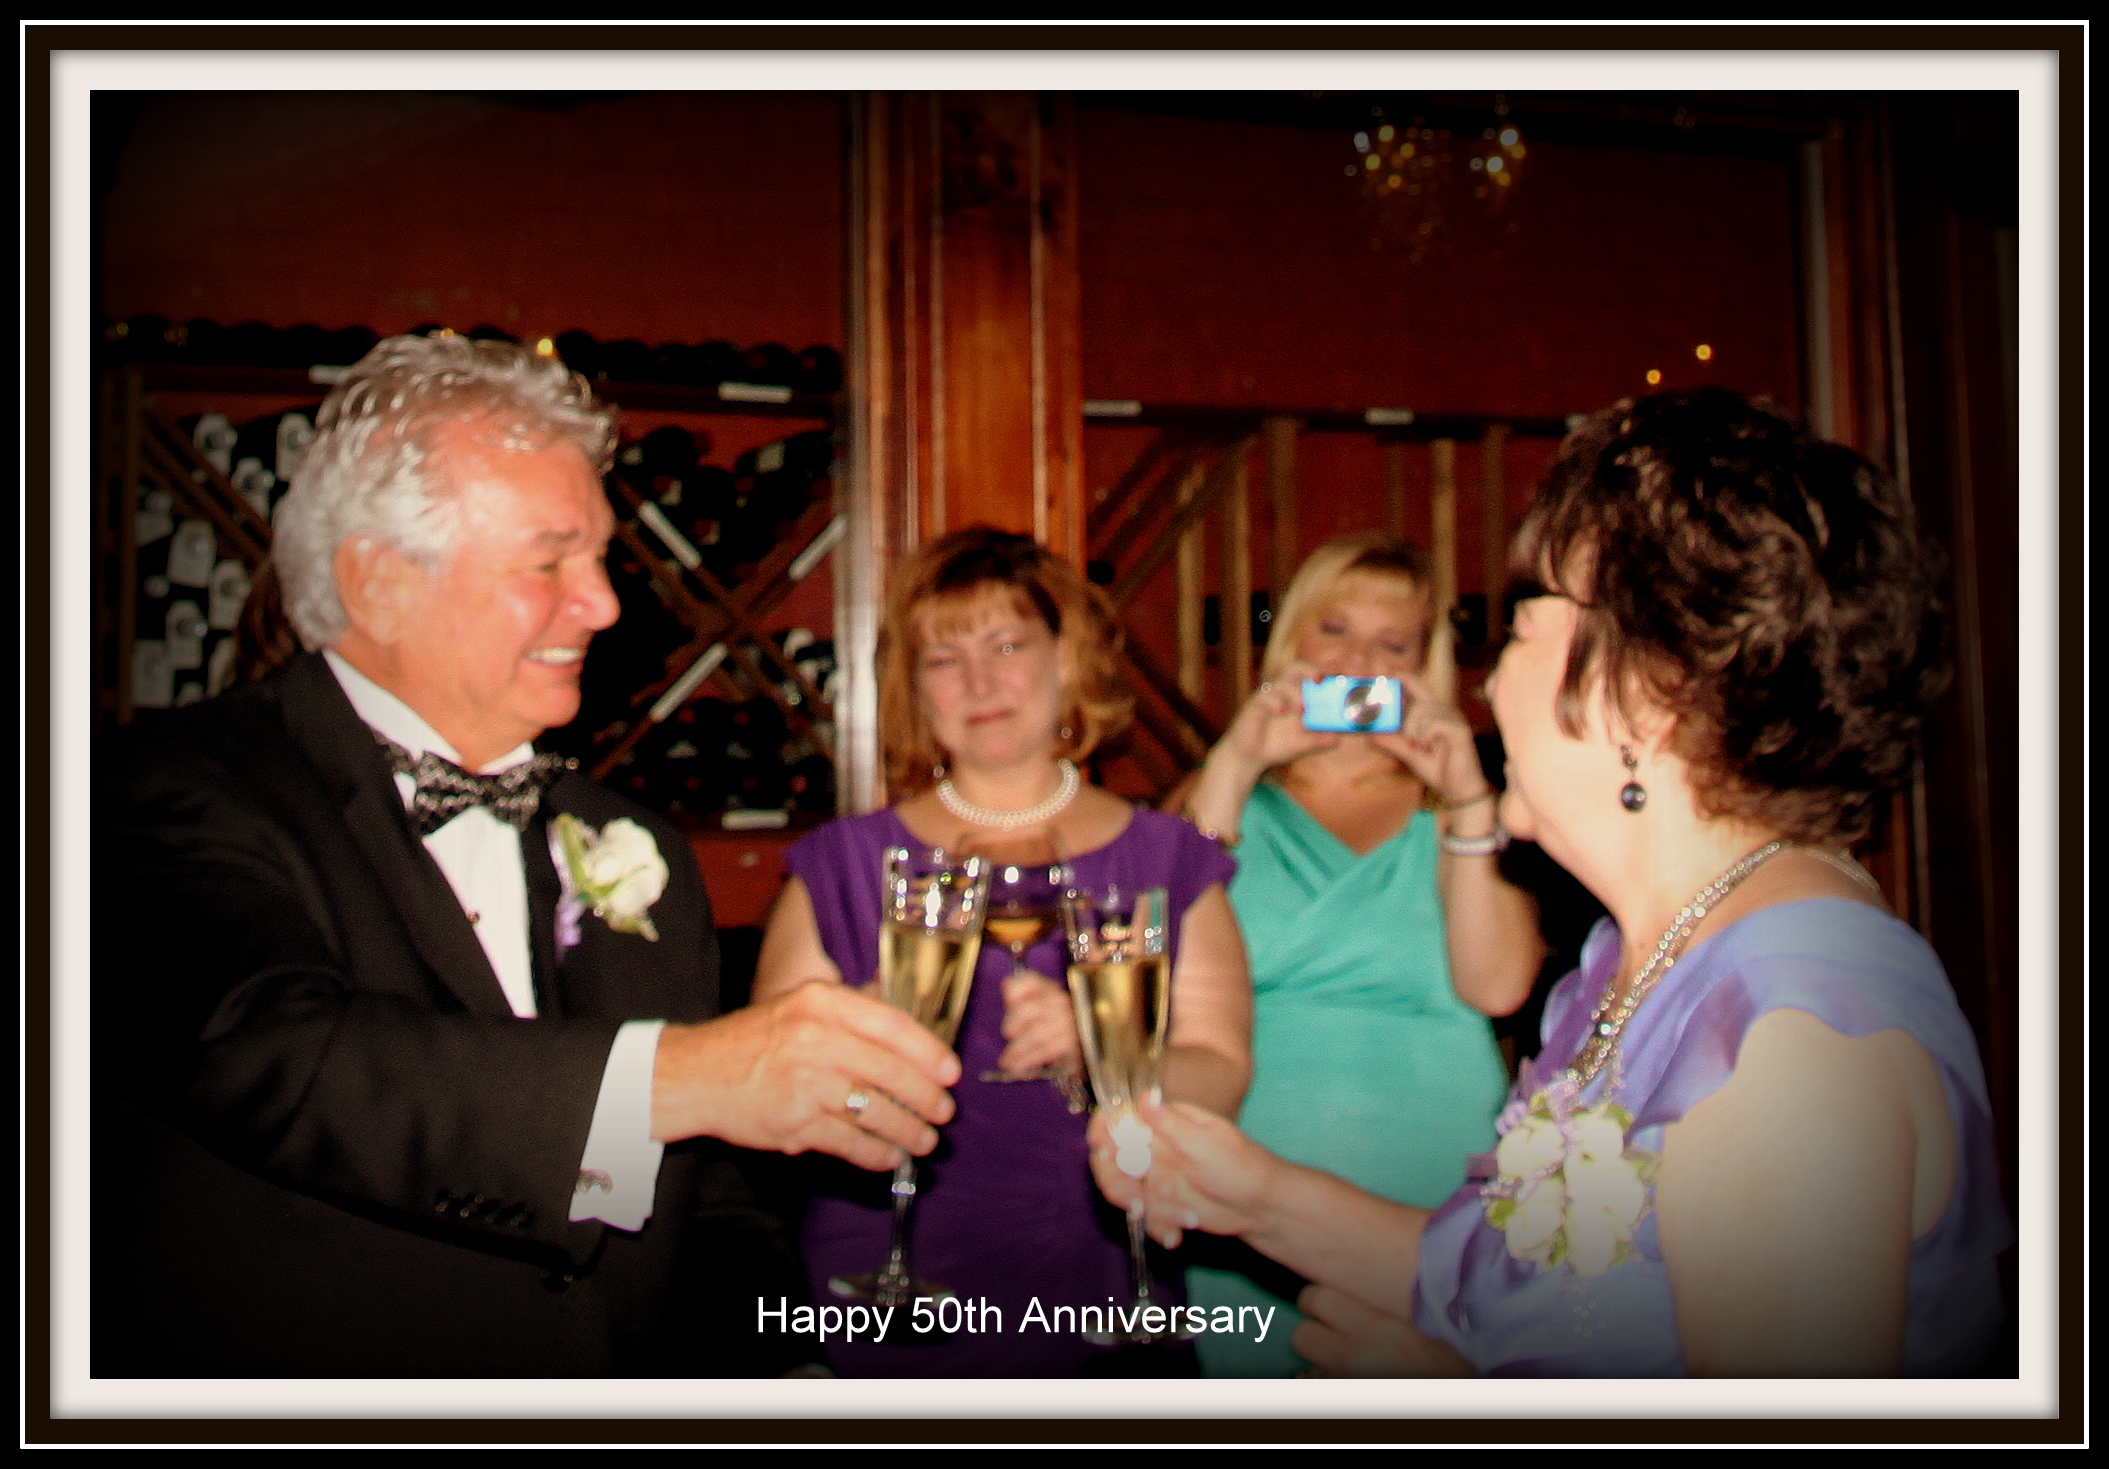 Sharlene and I toasting to our 50 years together.